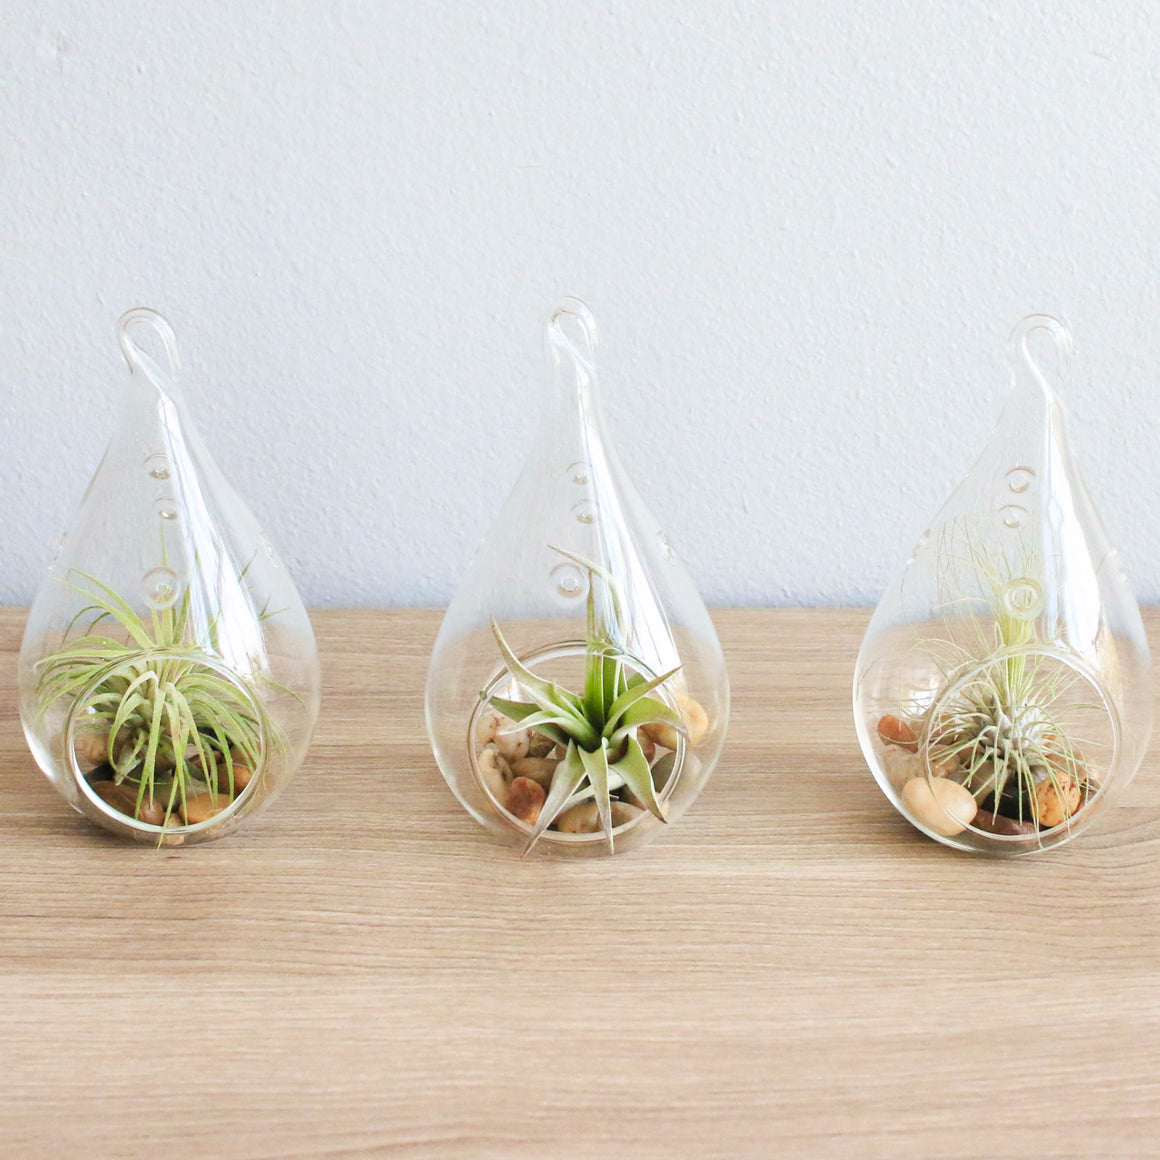 Set of 3 Airy Teardrop Terrariums with Flat Bottoms